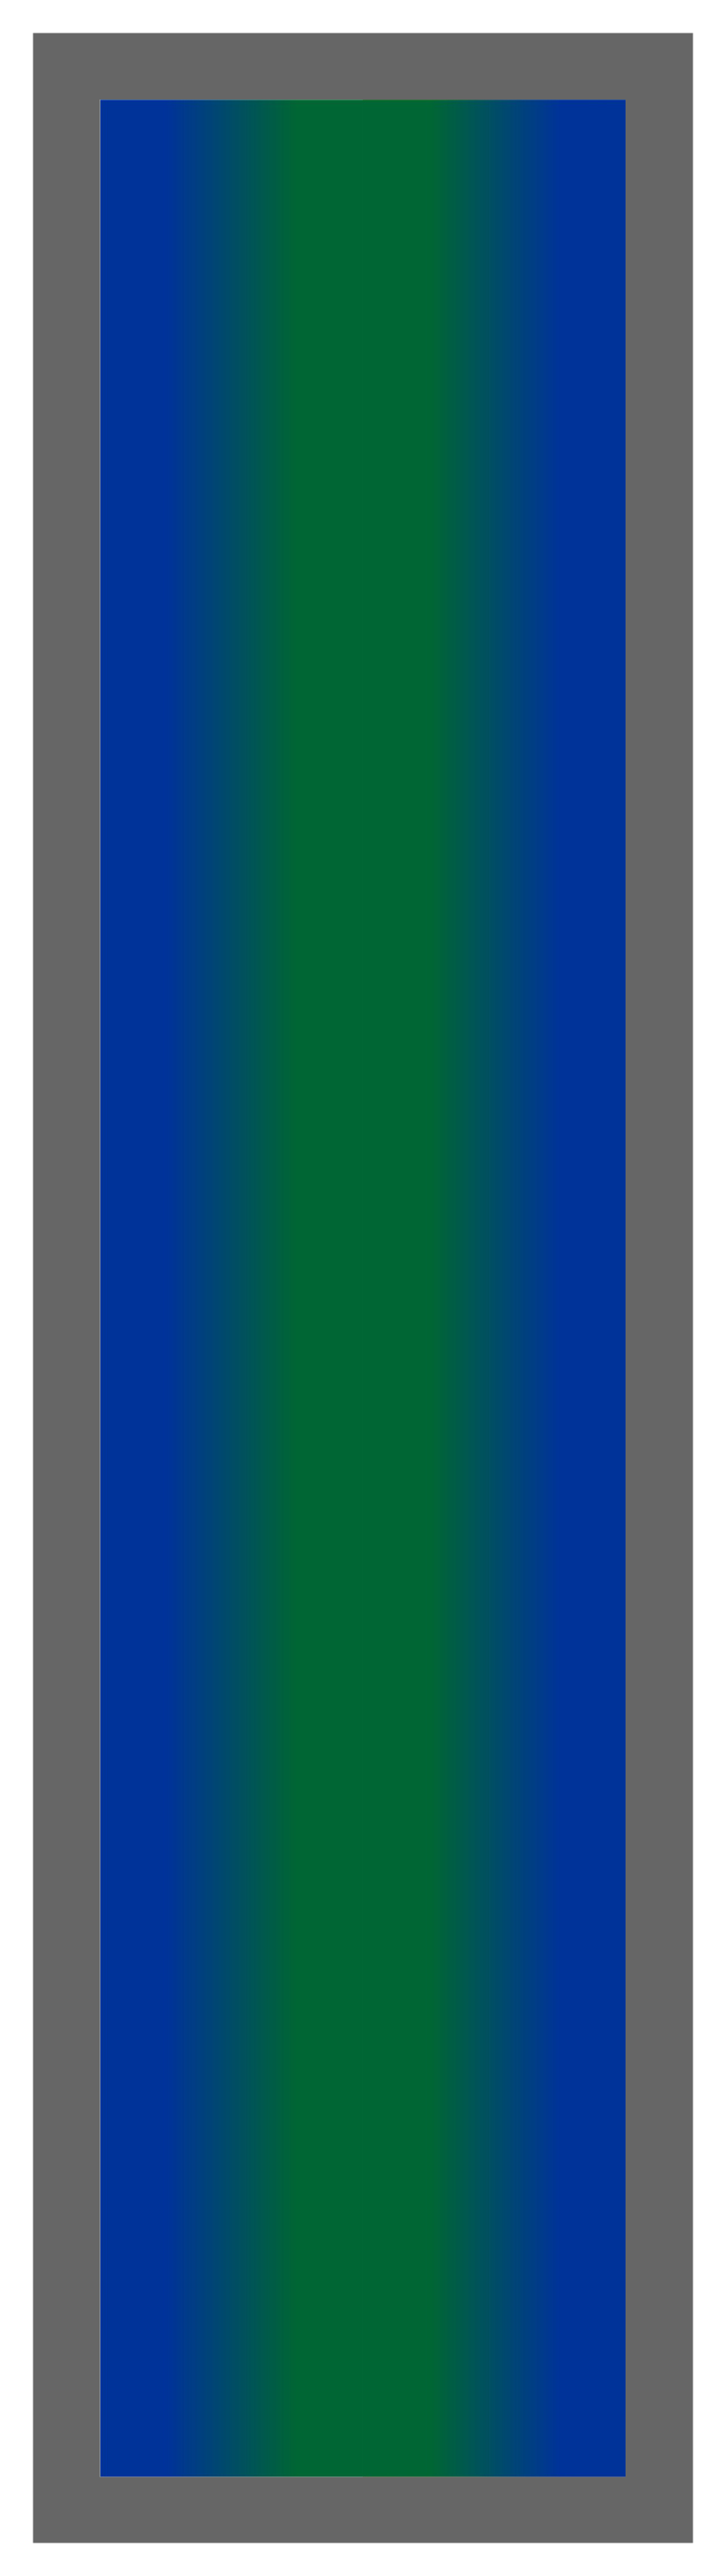 Navy-Forest Green-Navy Ombre Stripe